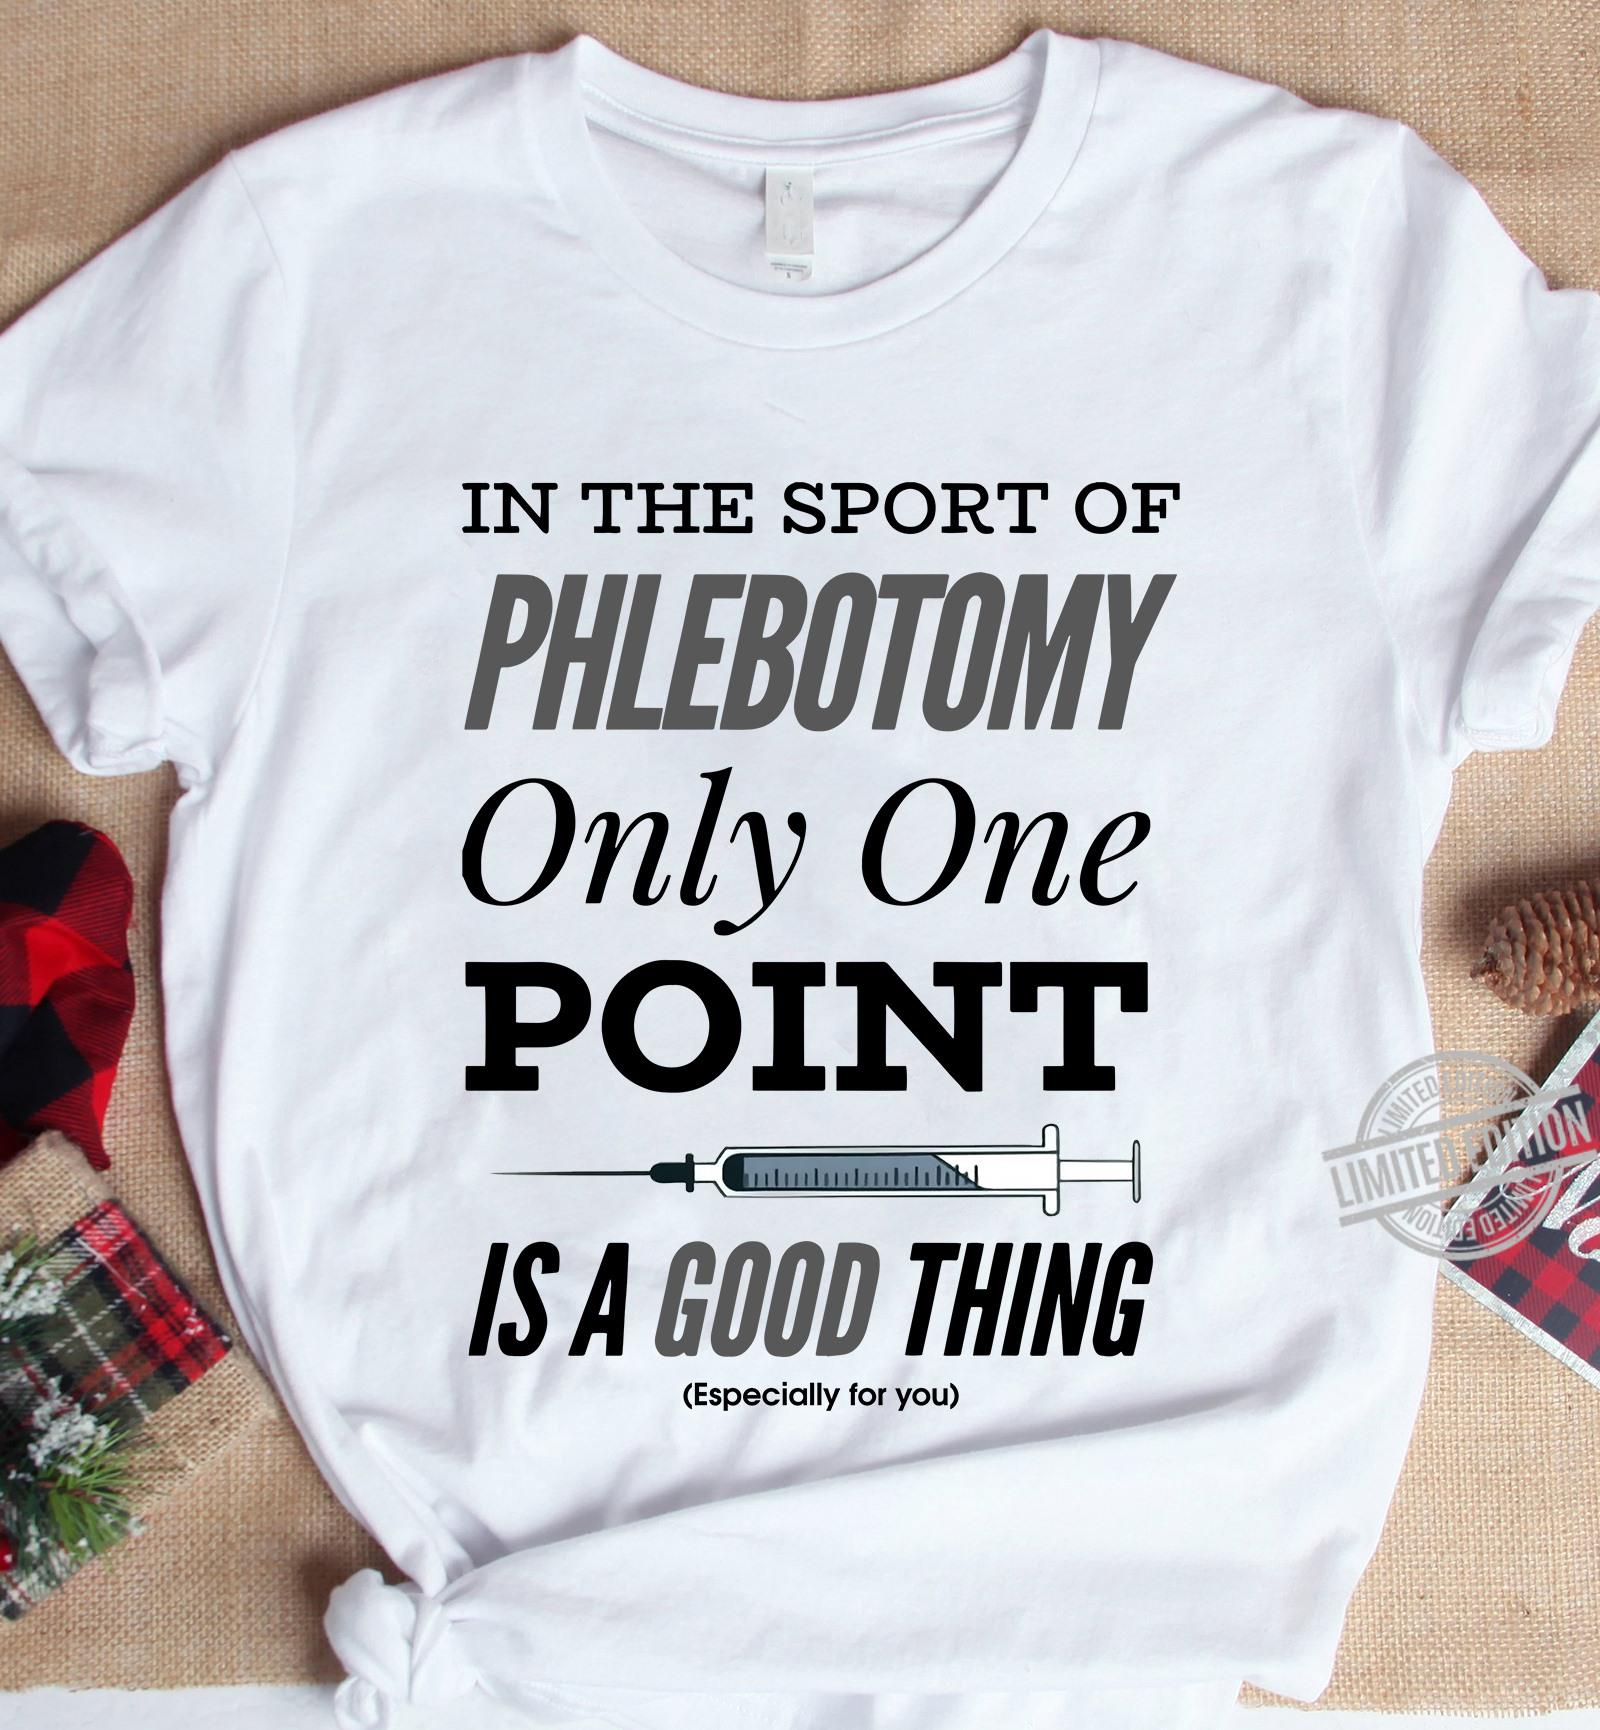 In The Phlebotomy Only One Point Is A Good Thing Shirt